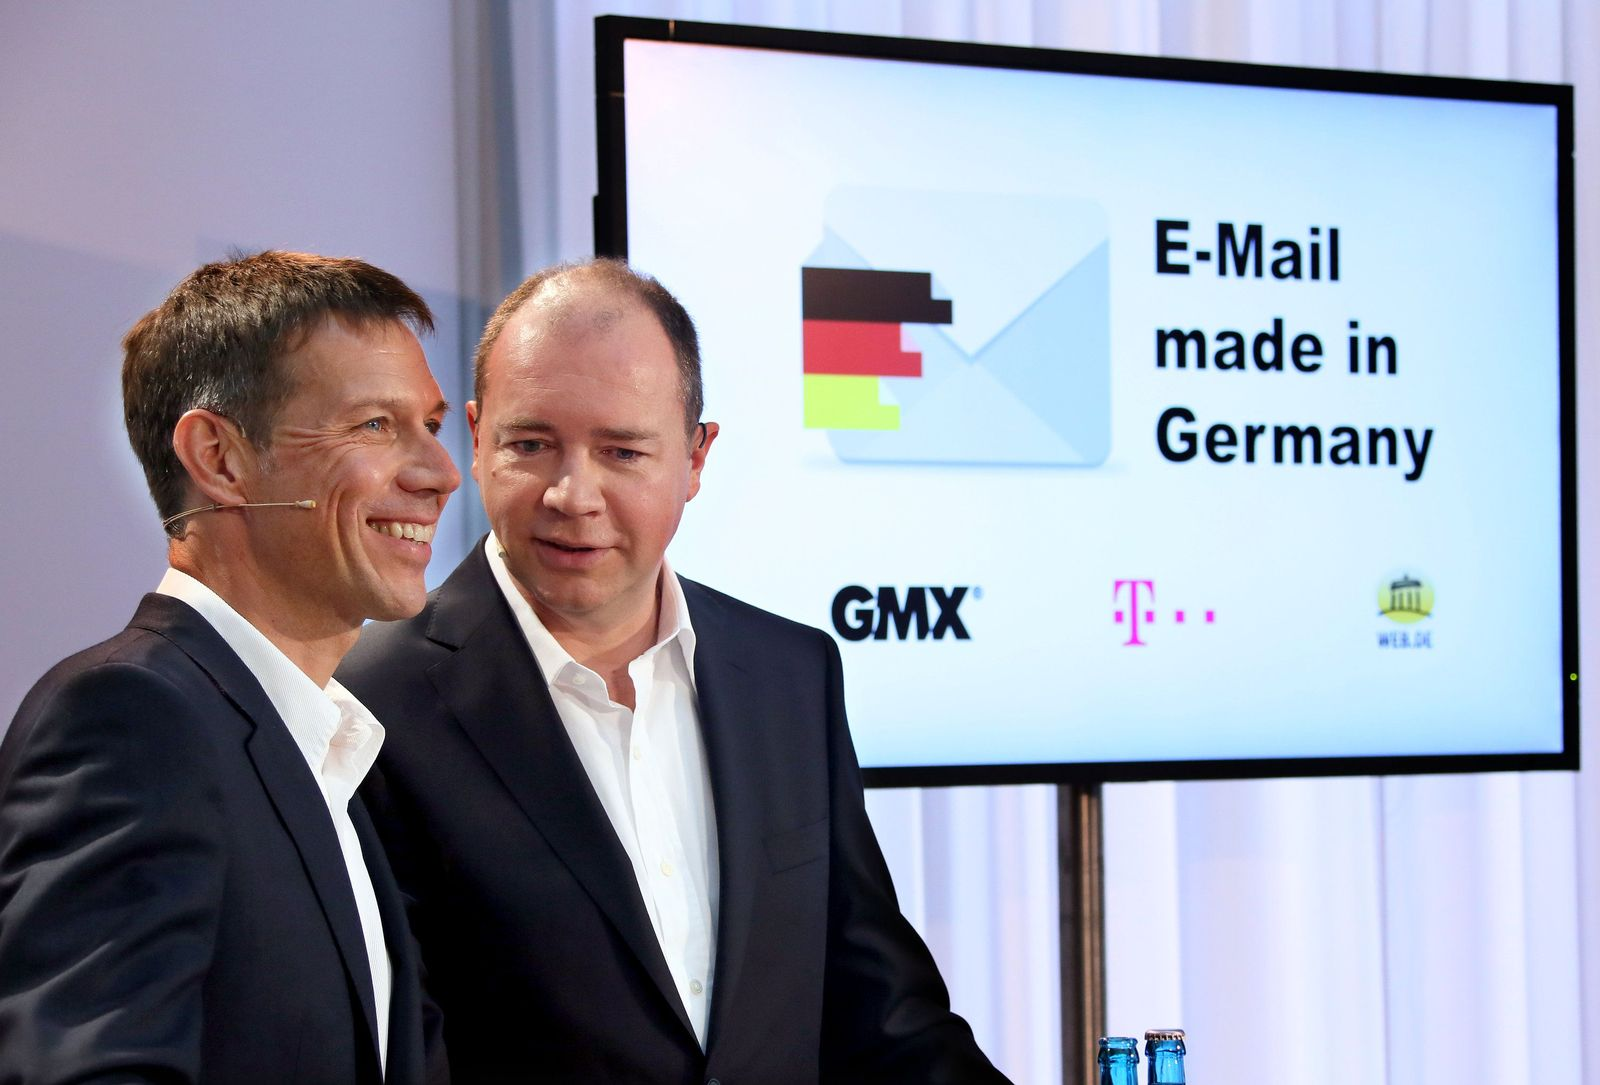 Email Made in Germany